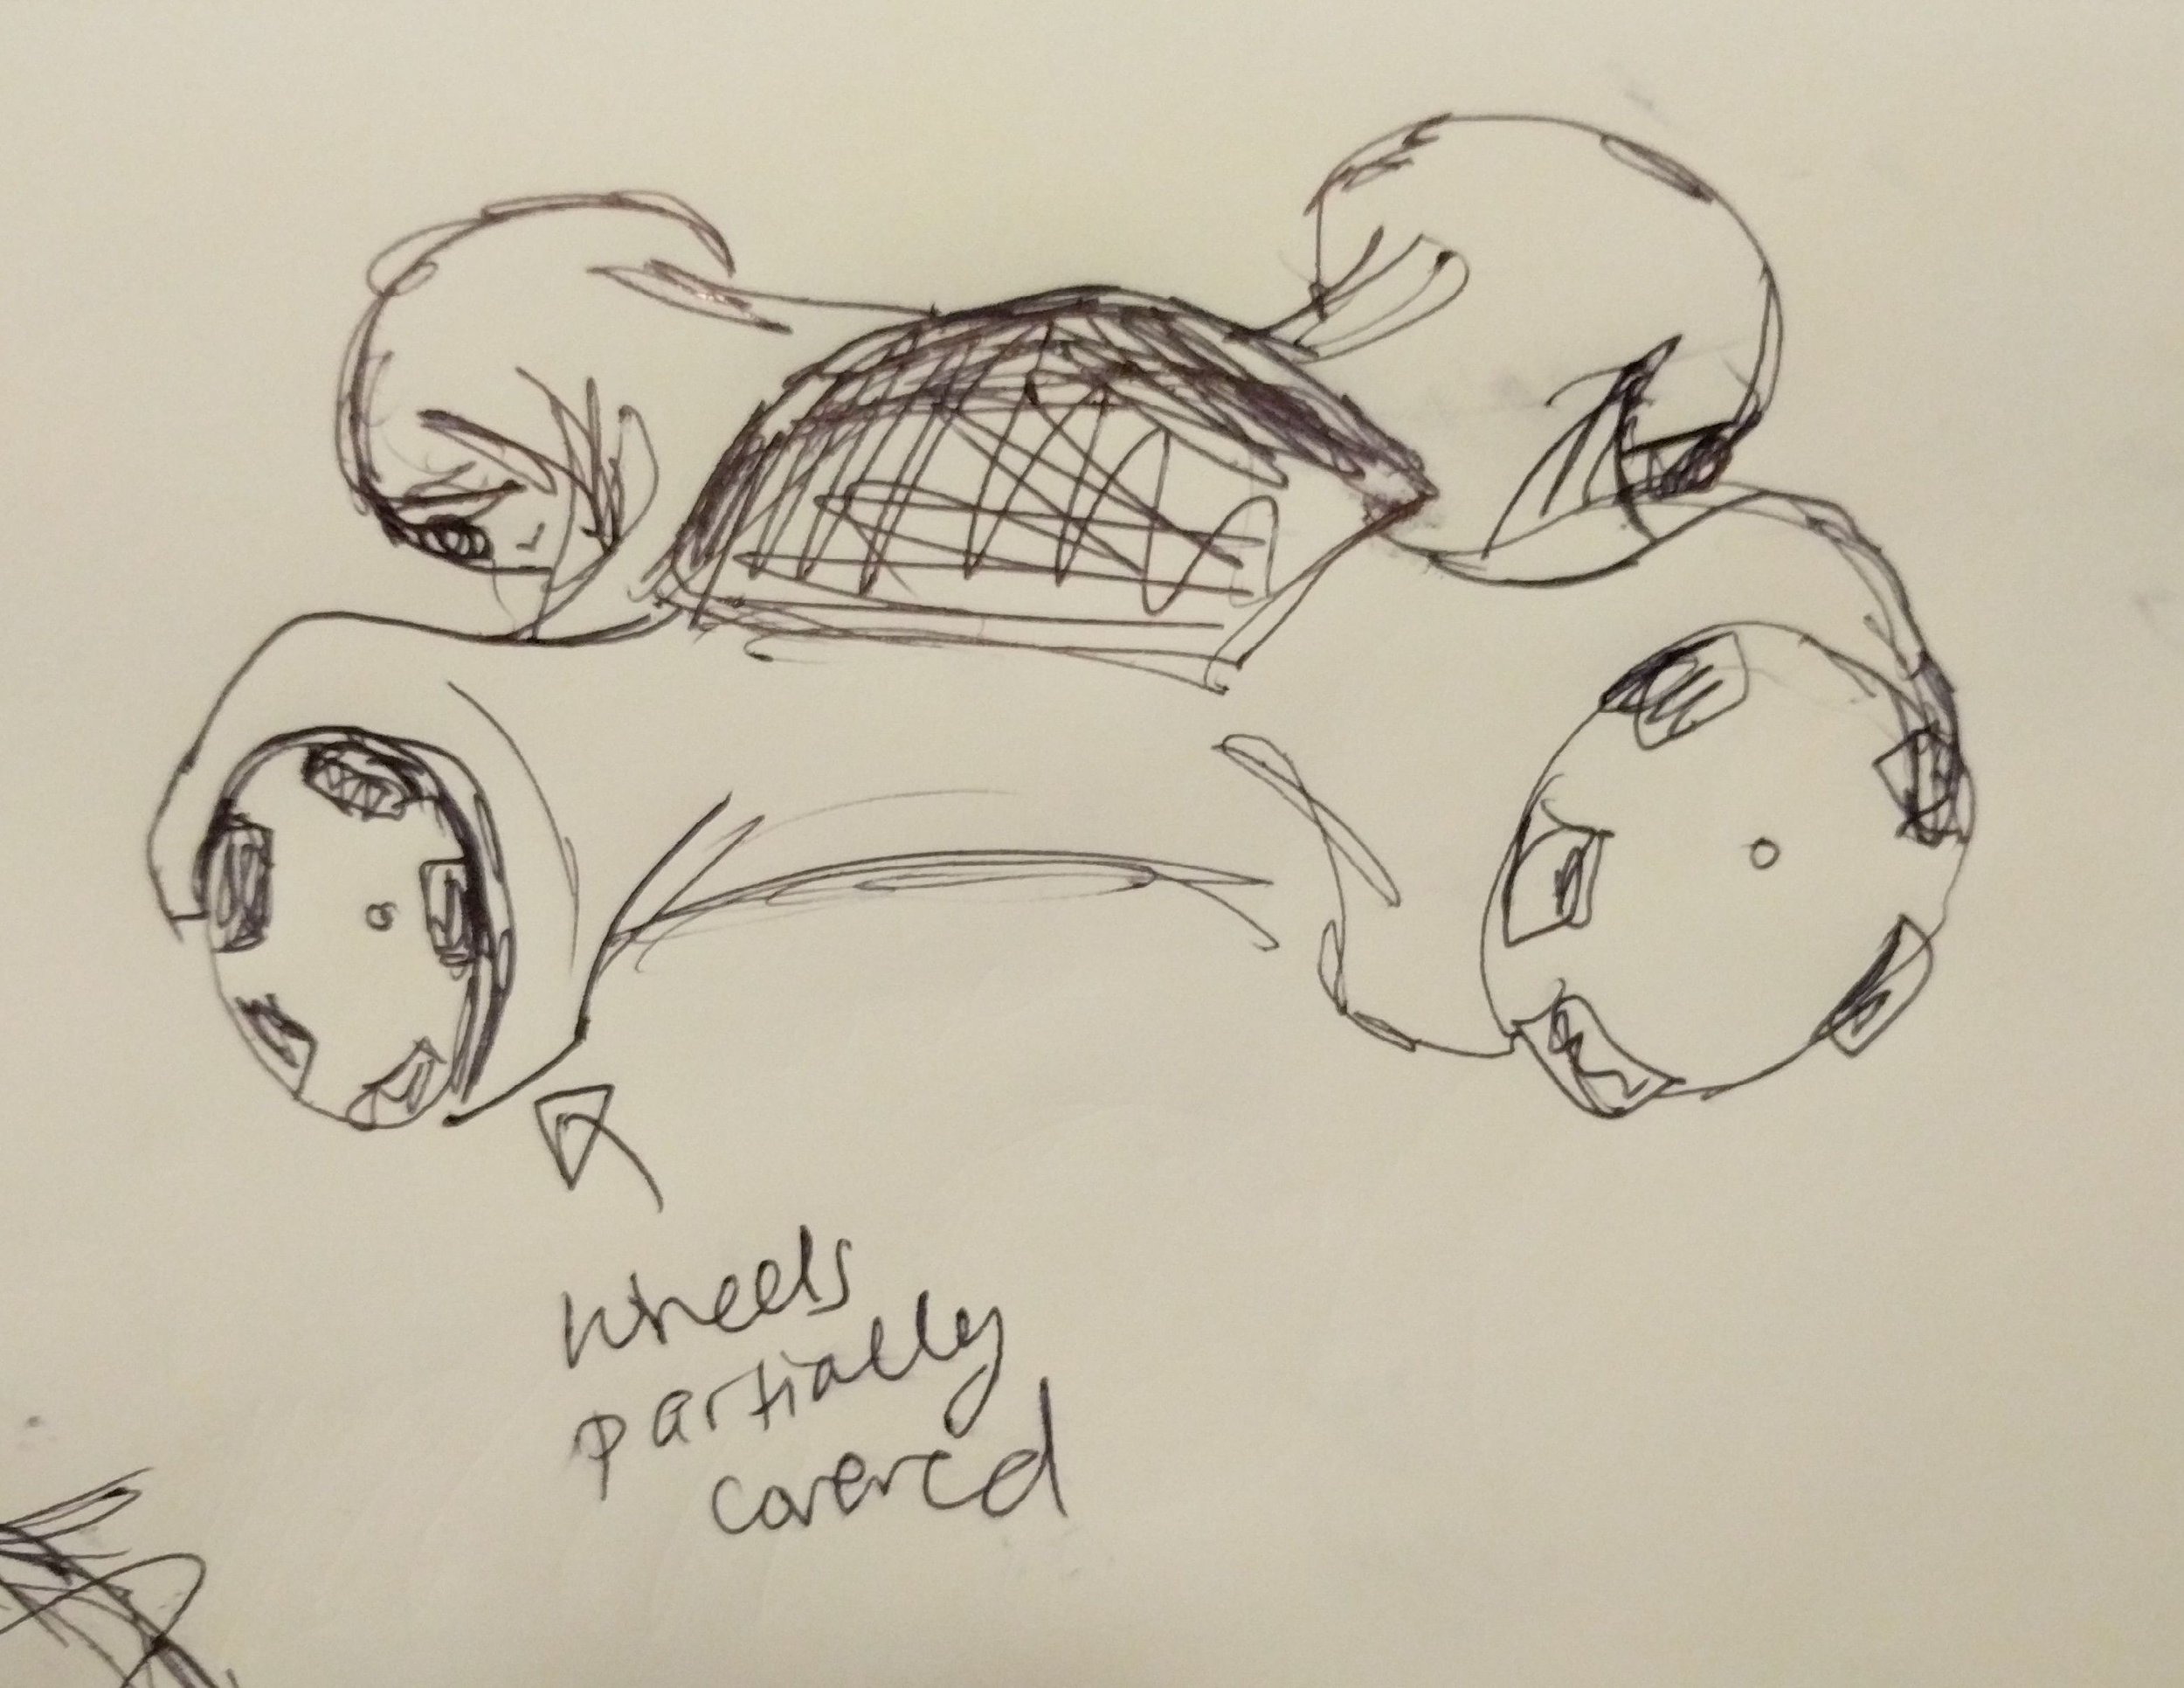 blc-carsketches_Page_2_Image_0001.jpg